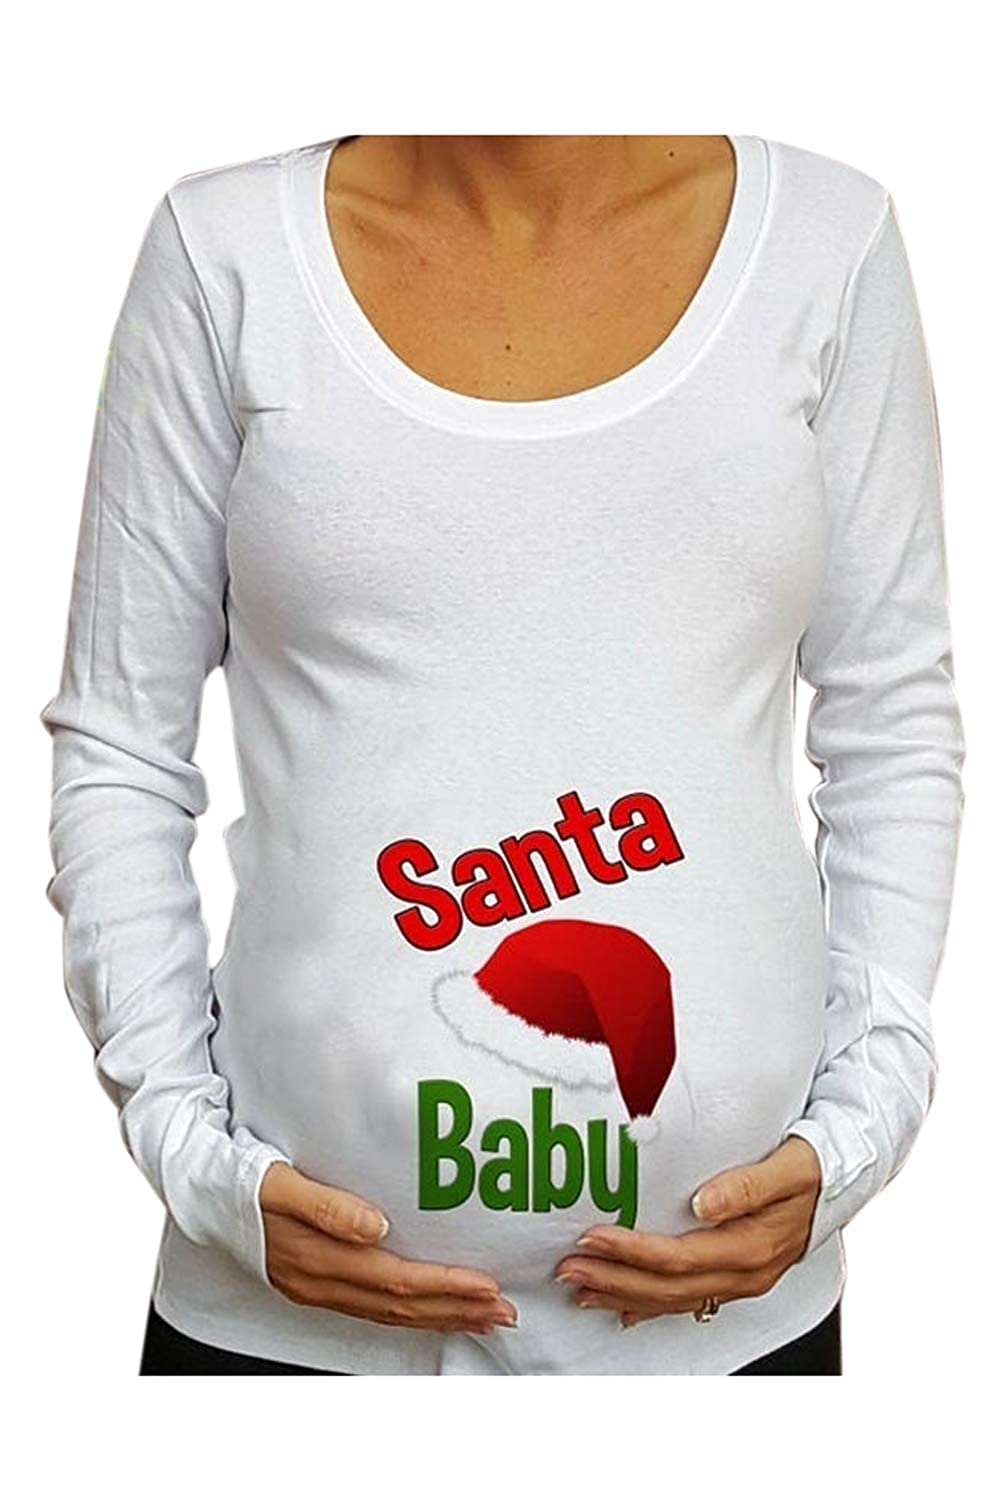 Fanvans Maternity Christmas Shirts Long Sleeve Letter Print Tops